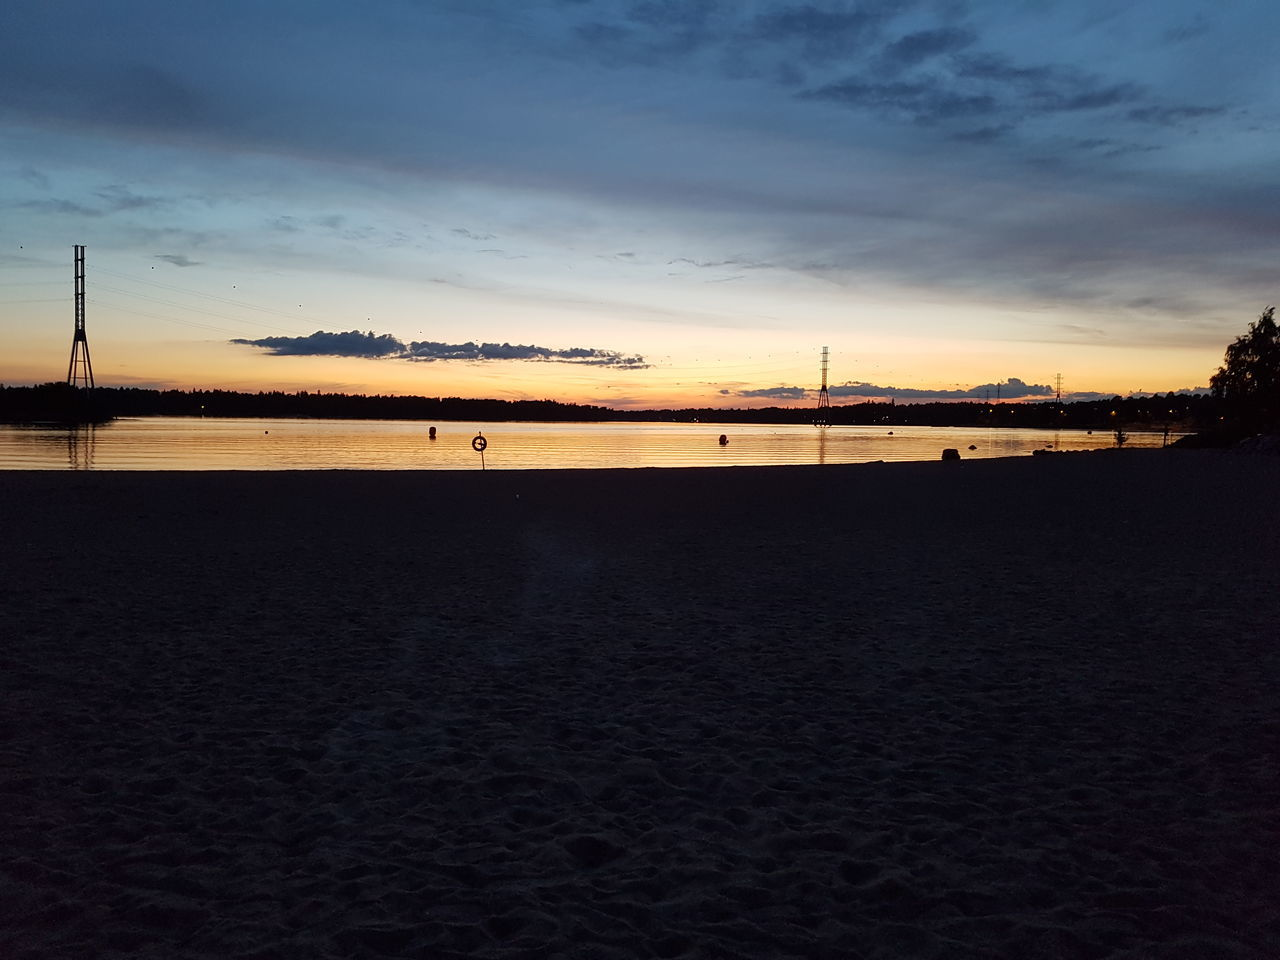 Beach Beauty In Nature Evening Evening Sky Finland Helsinki Hietaniemi Nature Sea Summer Tranquility No Filter